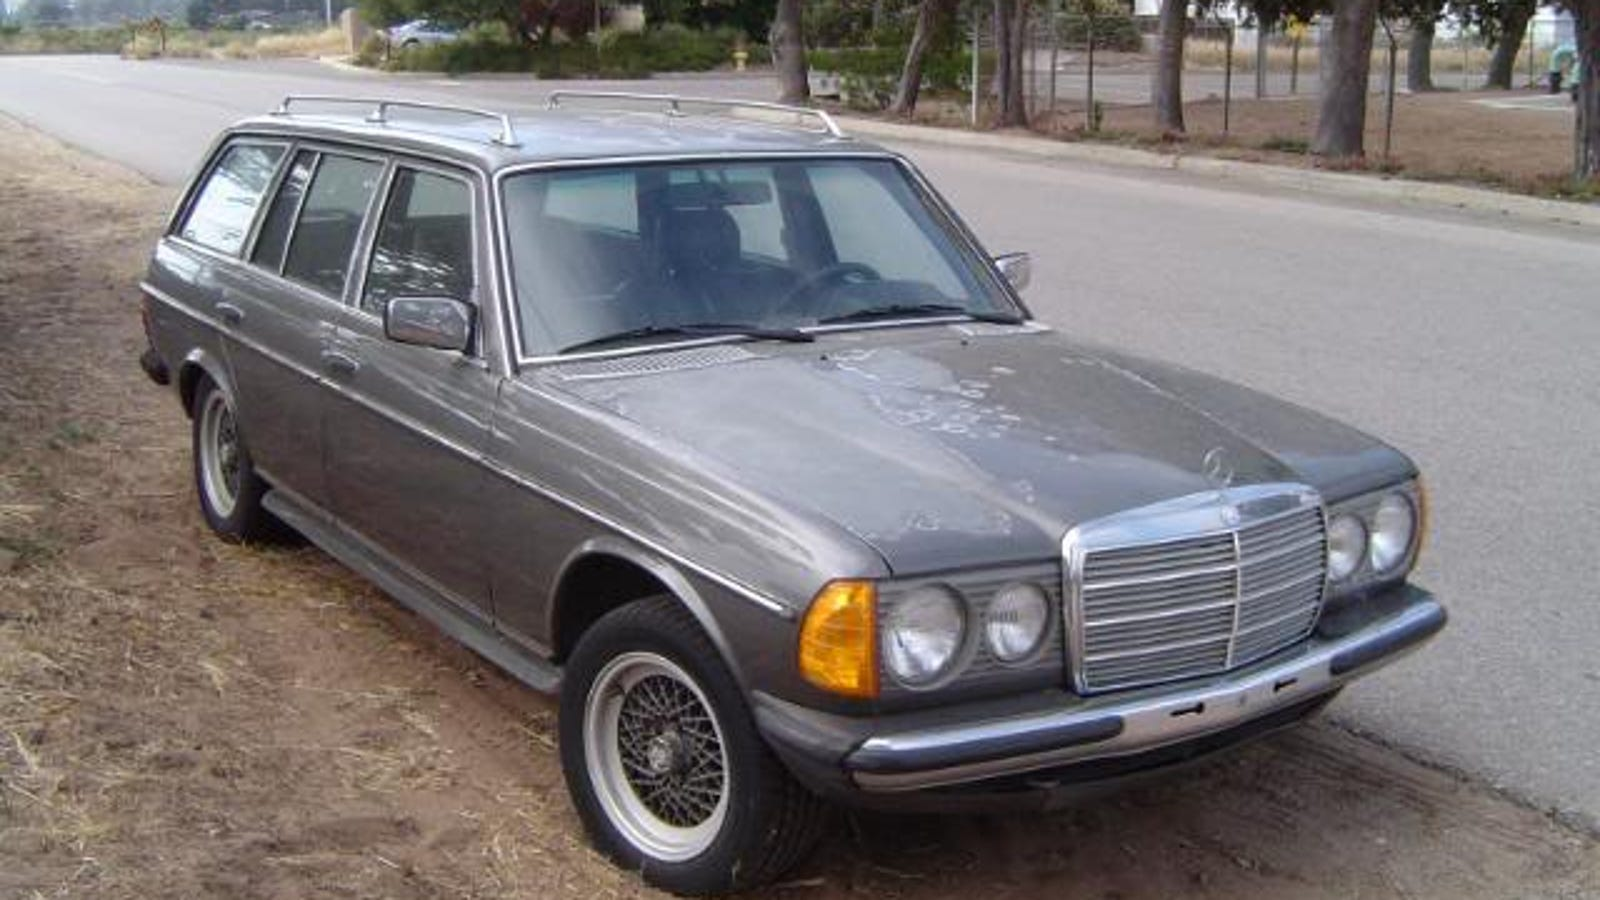 For $10,500, This W123 Has Been Around the Block